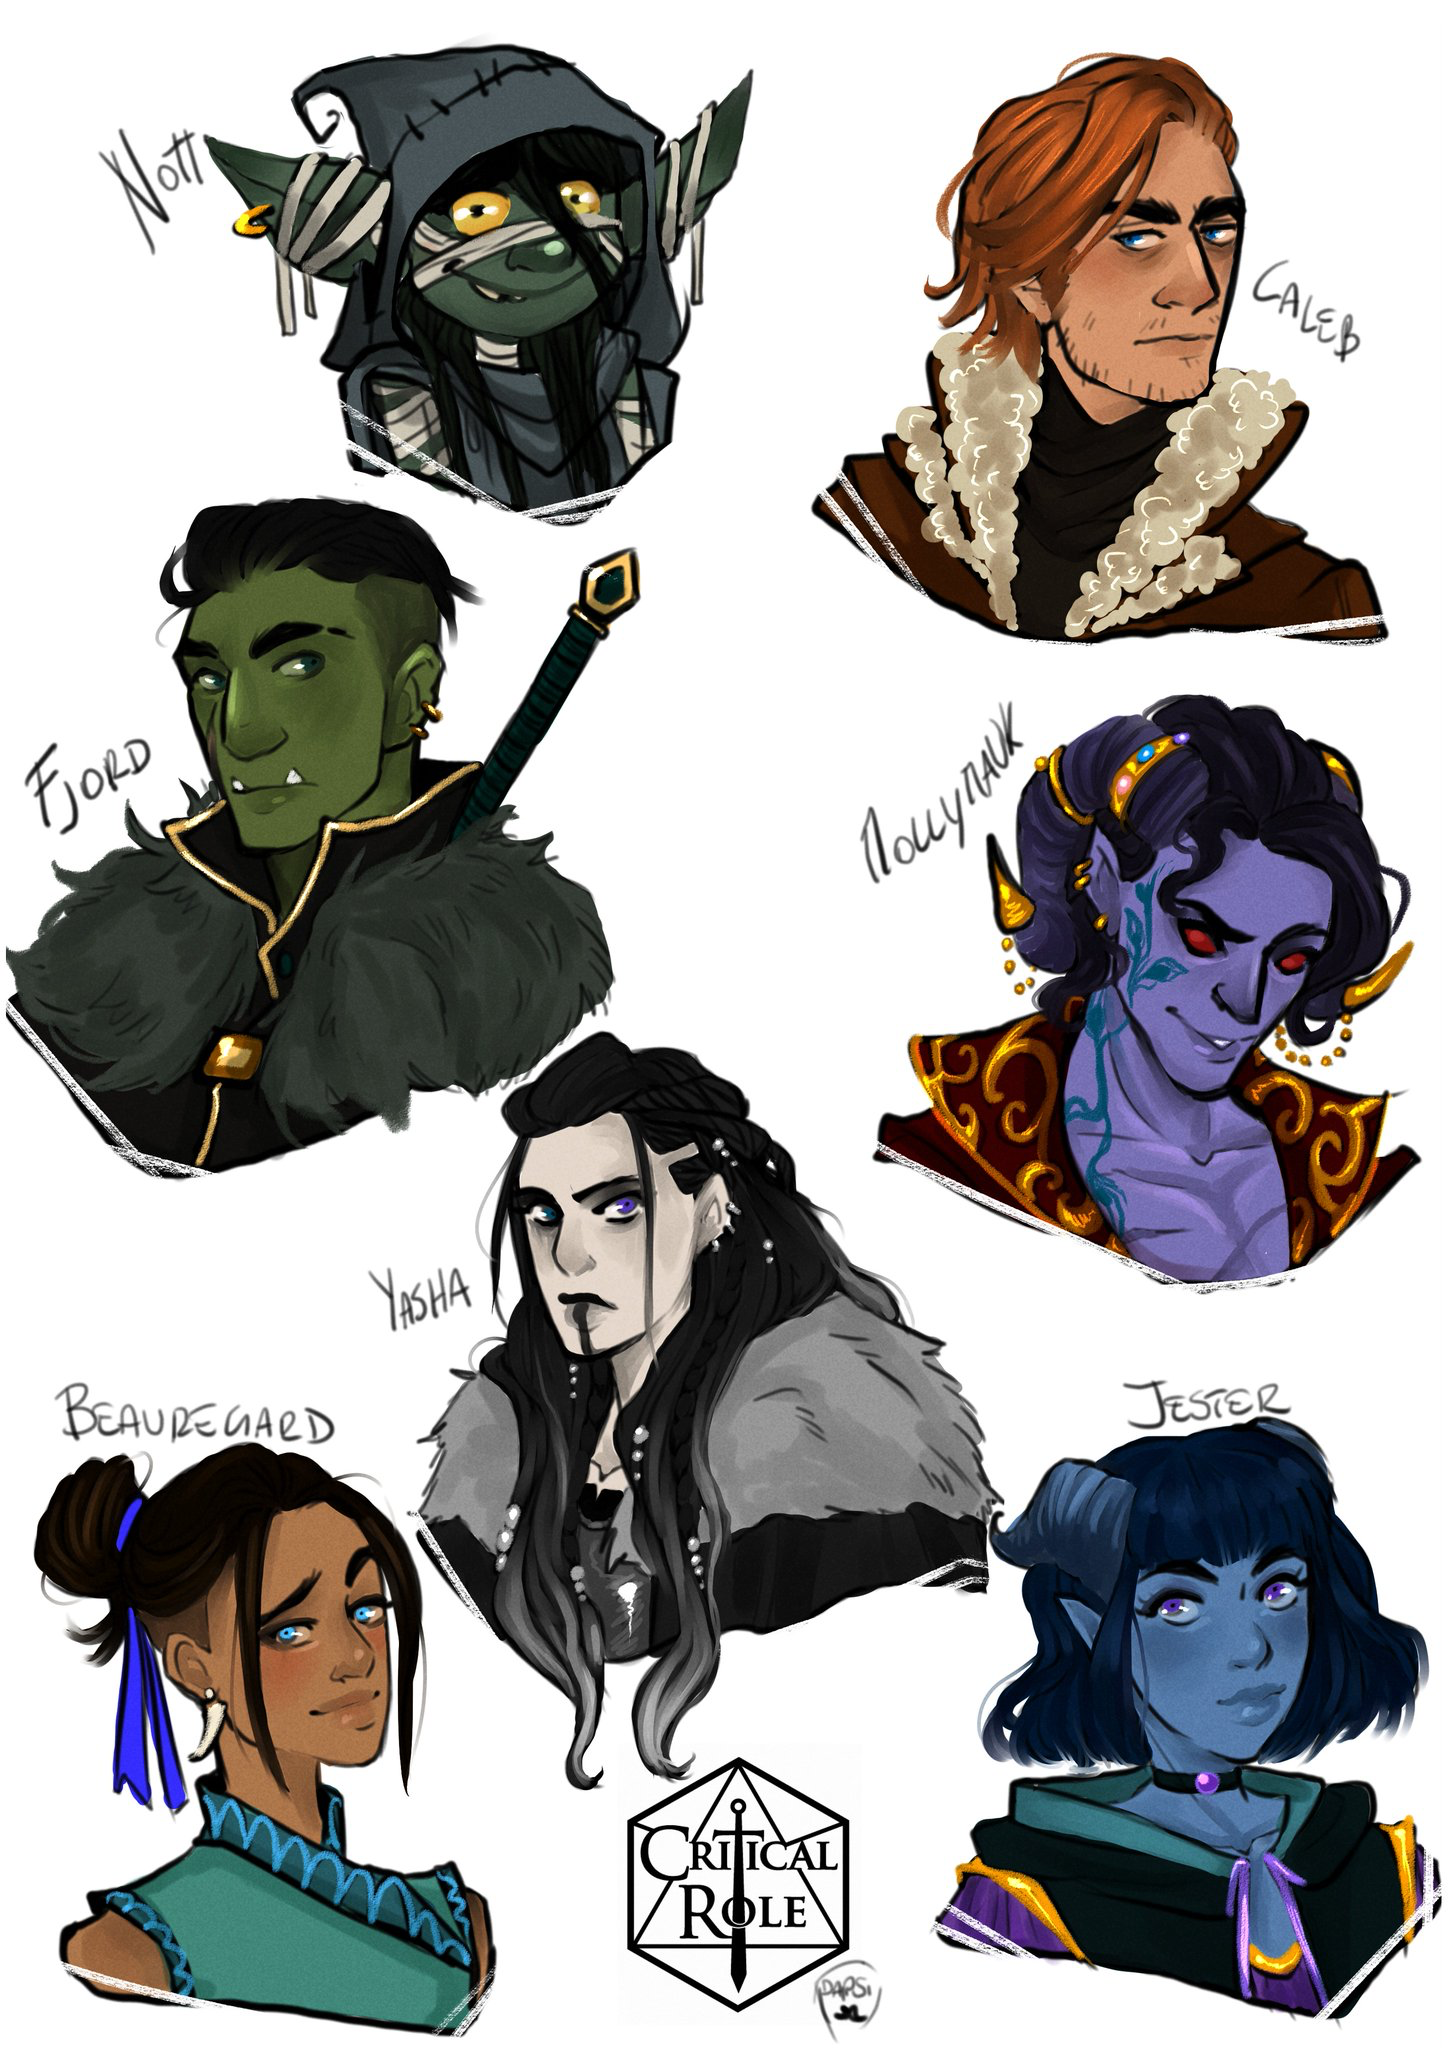 16 Criticalrolefanart Hashtag On Twitter: Pin By Charles Farrell On Critical Role